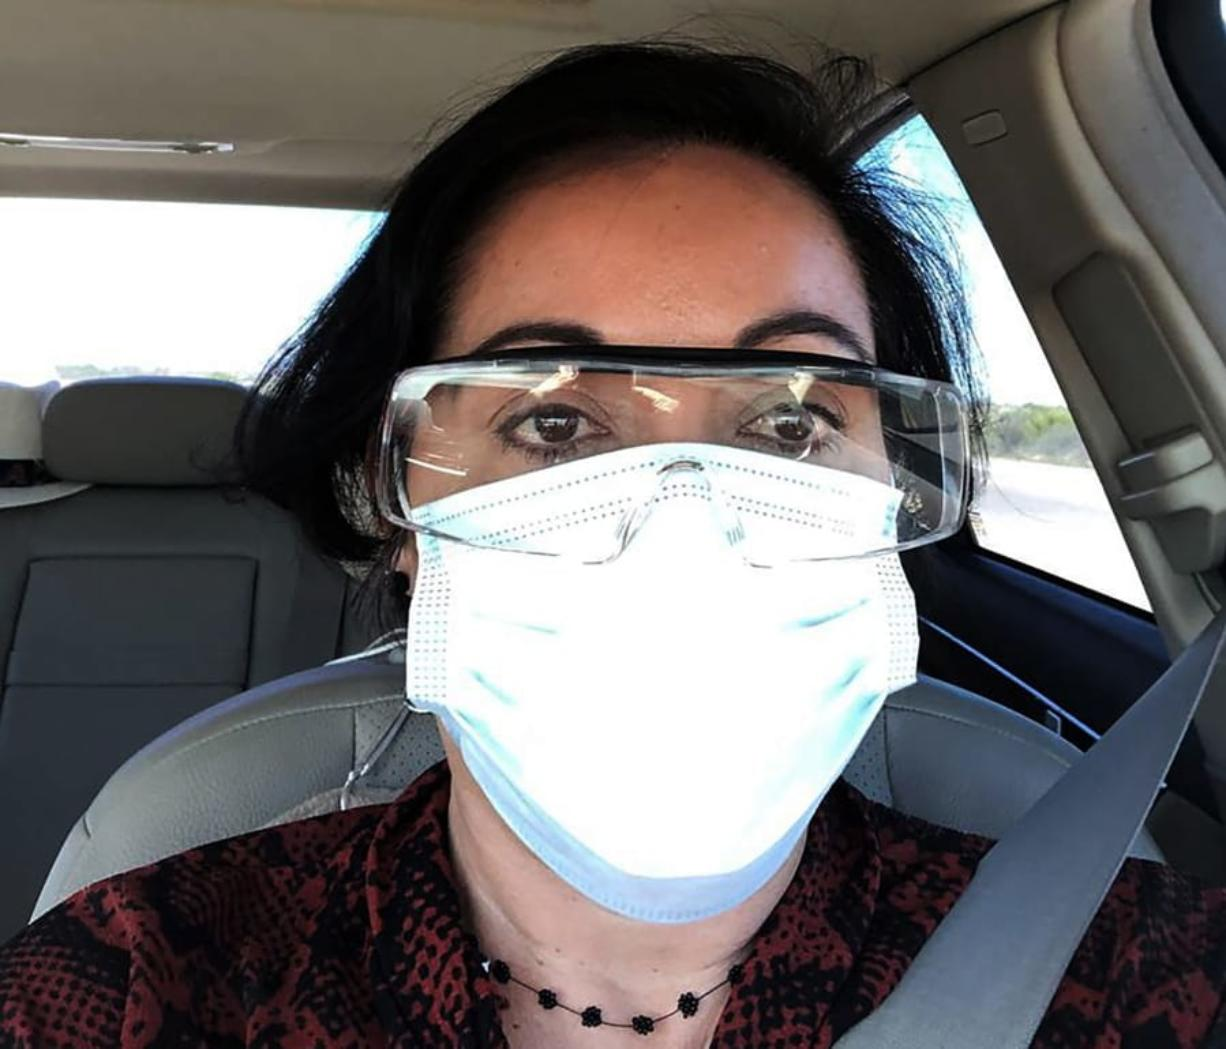 This March 23, 2020 photo provided by Margarita Silva shows her wearing her husband's land surveyor goggles, a mask she borrowed from a friend and medical gloves she got from a hardware store outside the La Palma Detention Center in Eloy, Ariz. Attorneys and judges in U.S. immigration courts are trying to protect themselves from the coronavirus with borrowed masks and hand sanitizer. The Trump administration has delayed hearings for immigrants who aren't in detention but is moving forward for those who are.